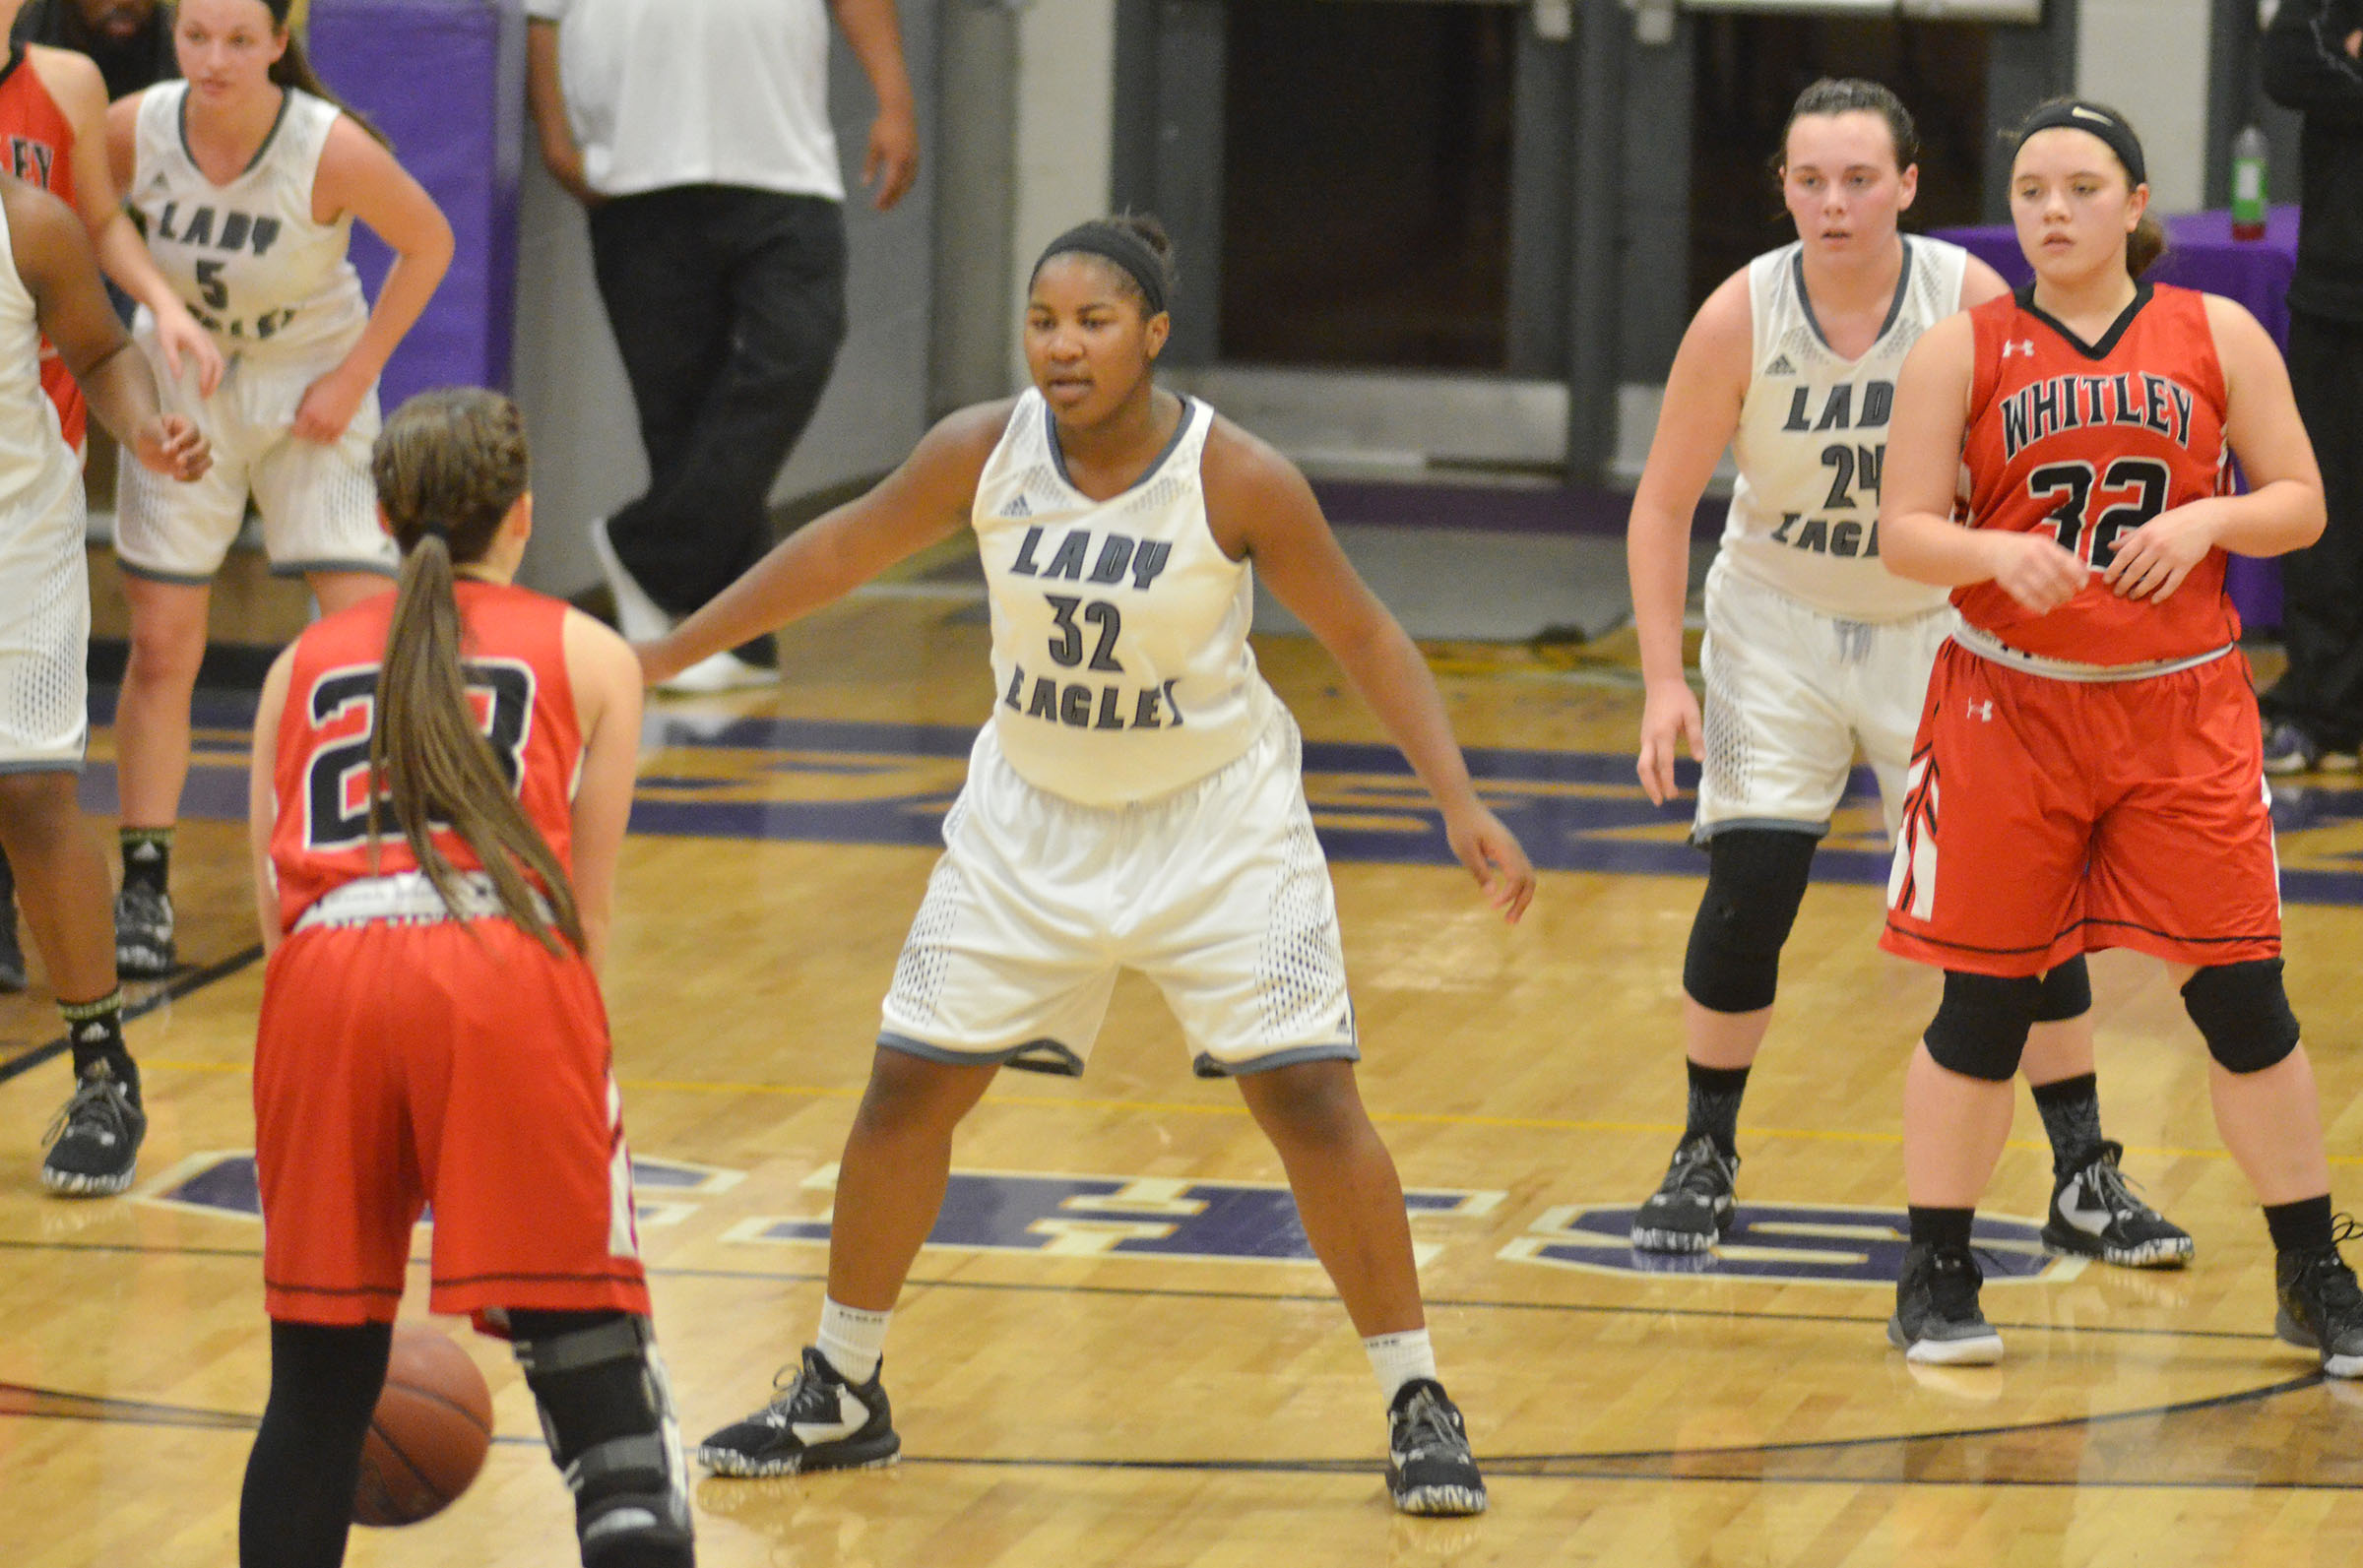 CHS junior Nena Barnett and freshman Katelyn Miller, at right, play defense.